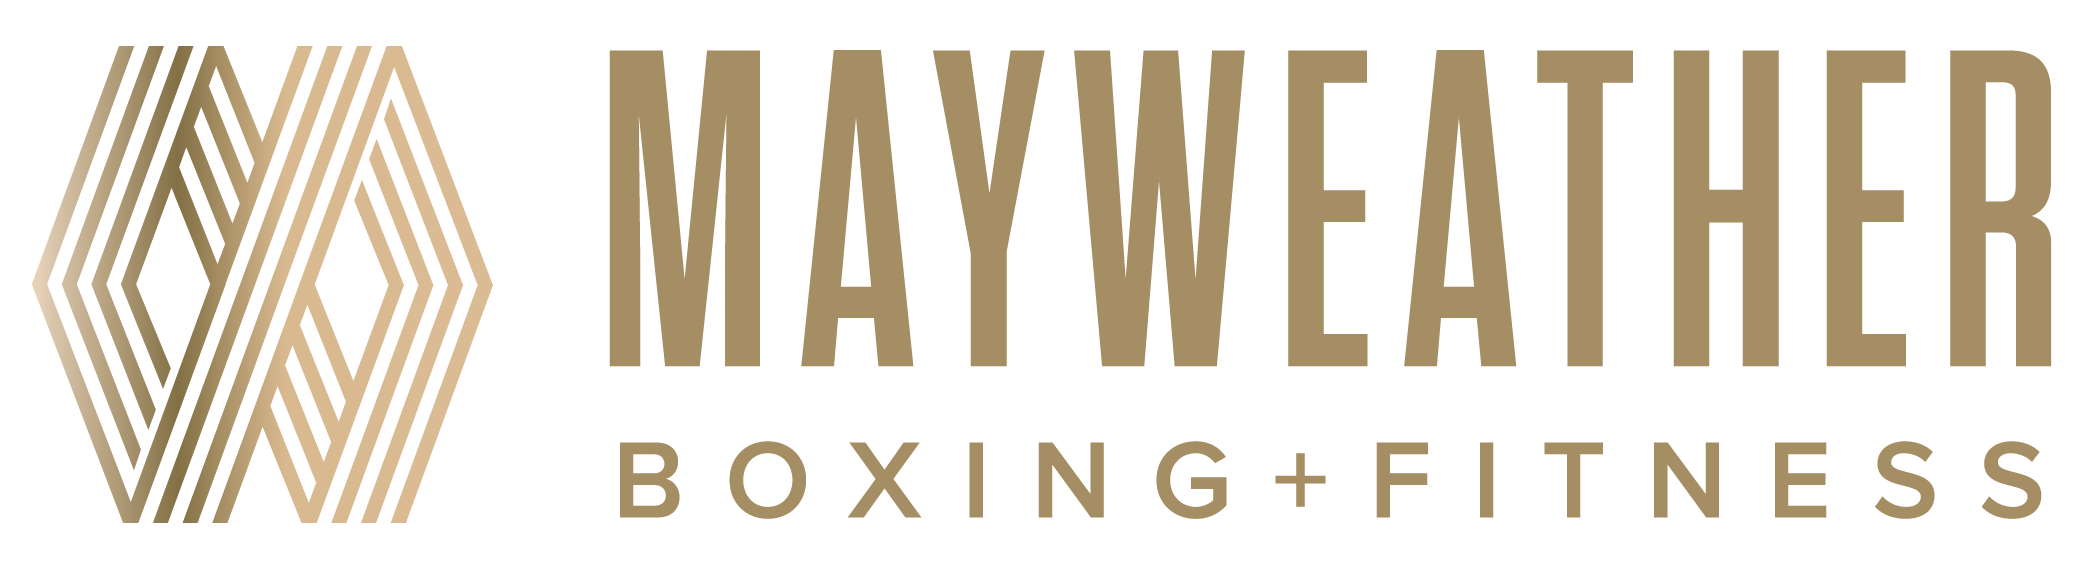 Mayweather Boxing + Fitness Pearland Logo